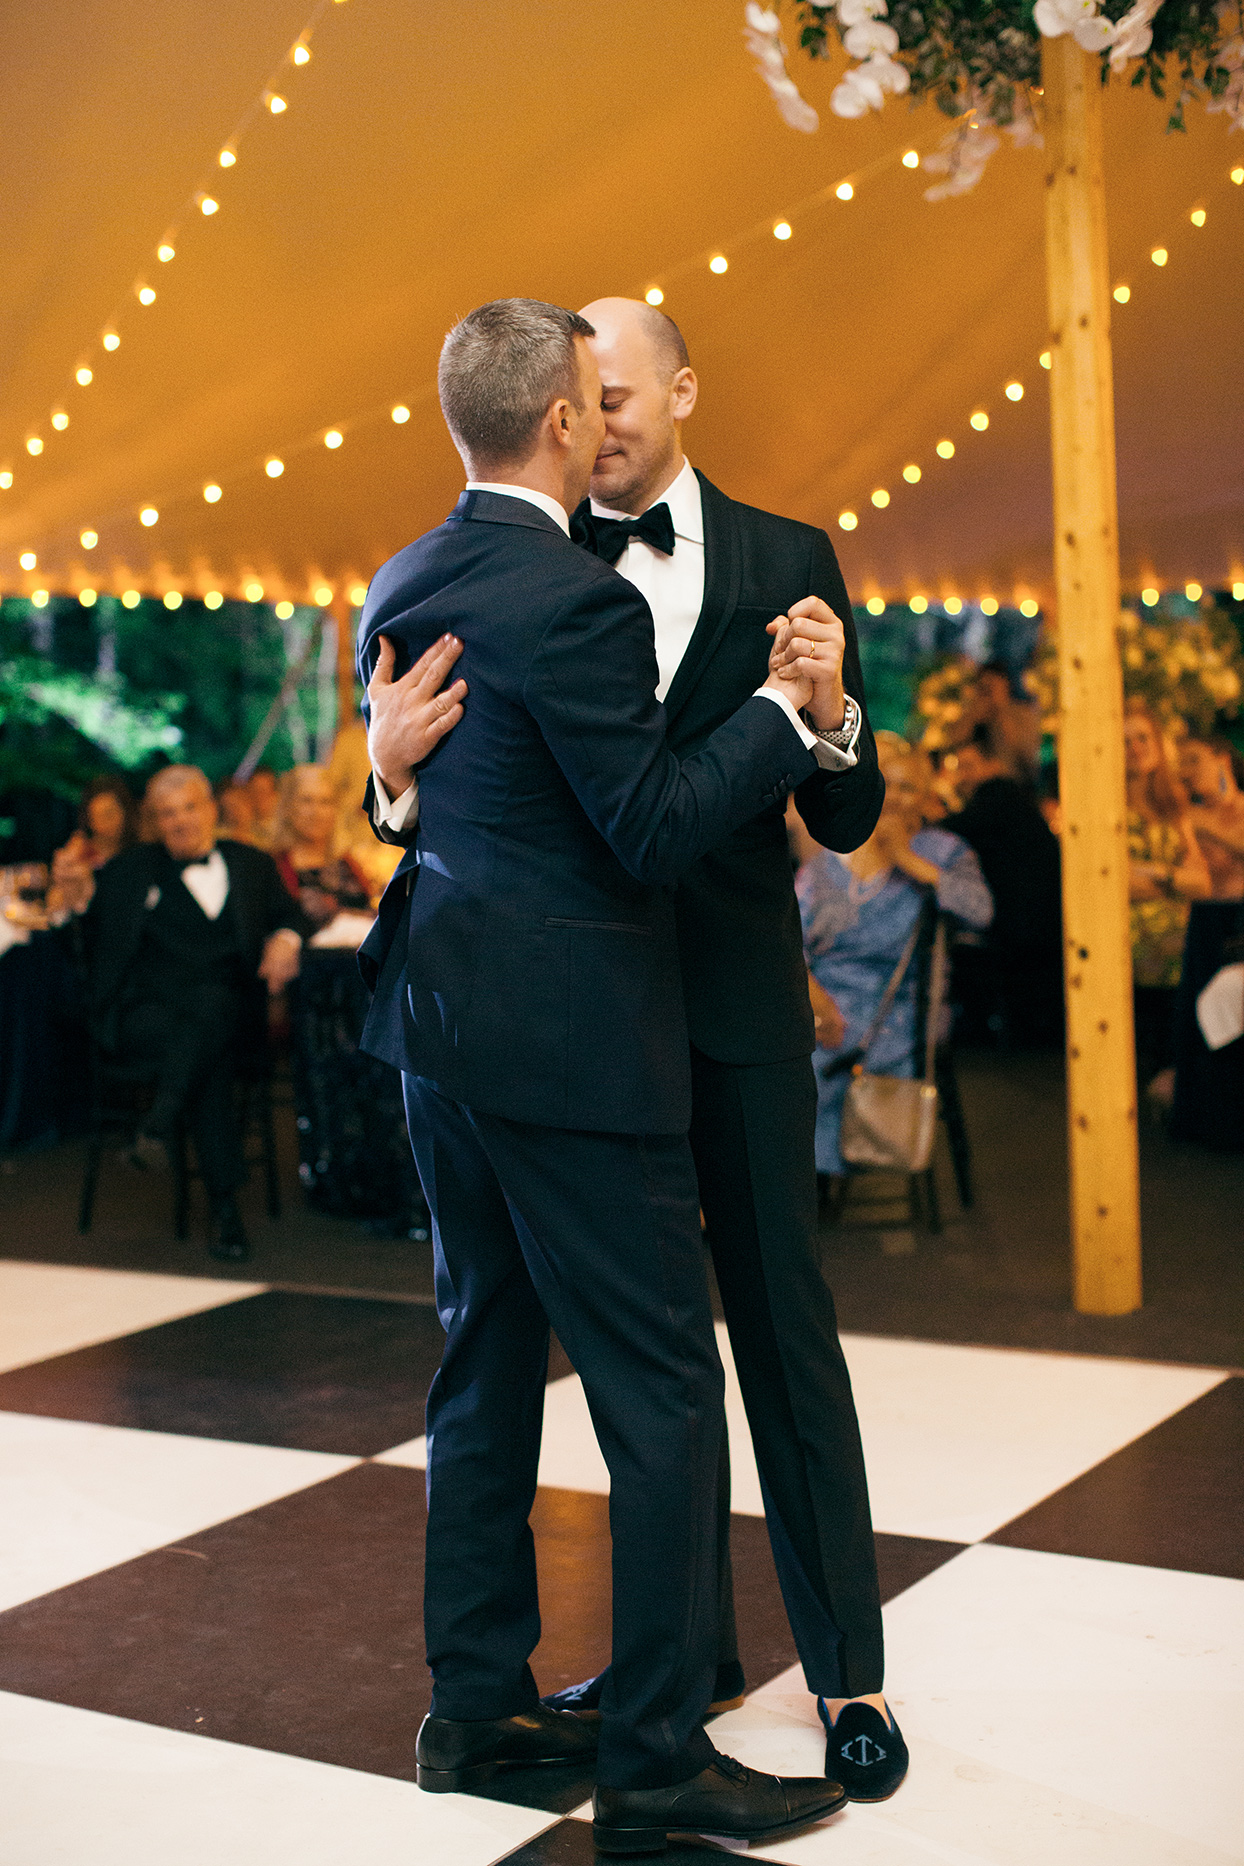 grooms first dance in reception tent